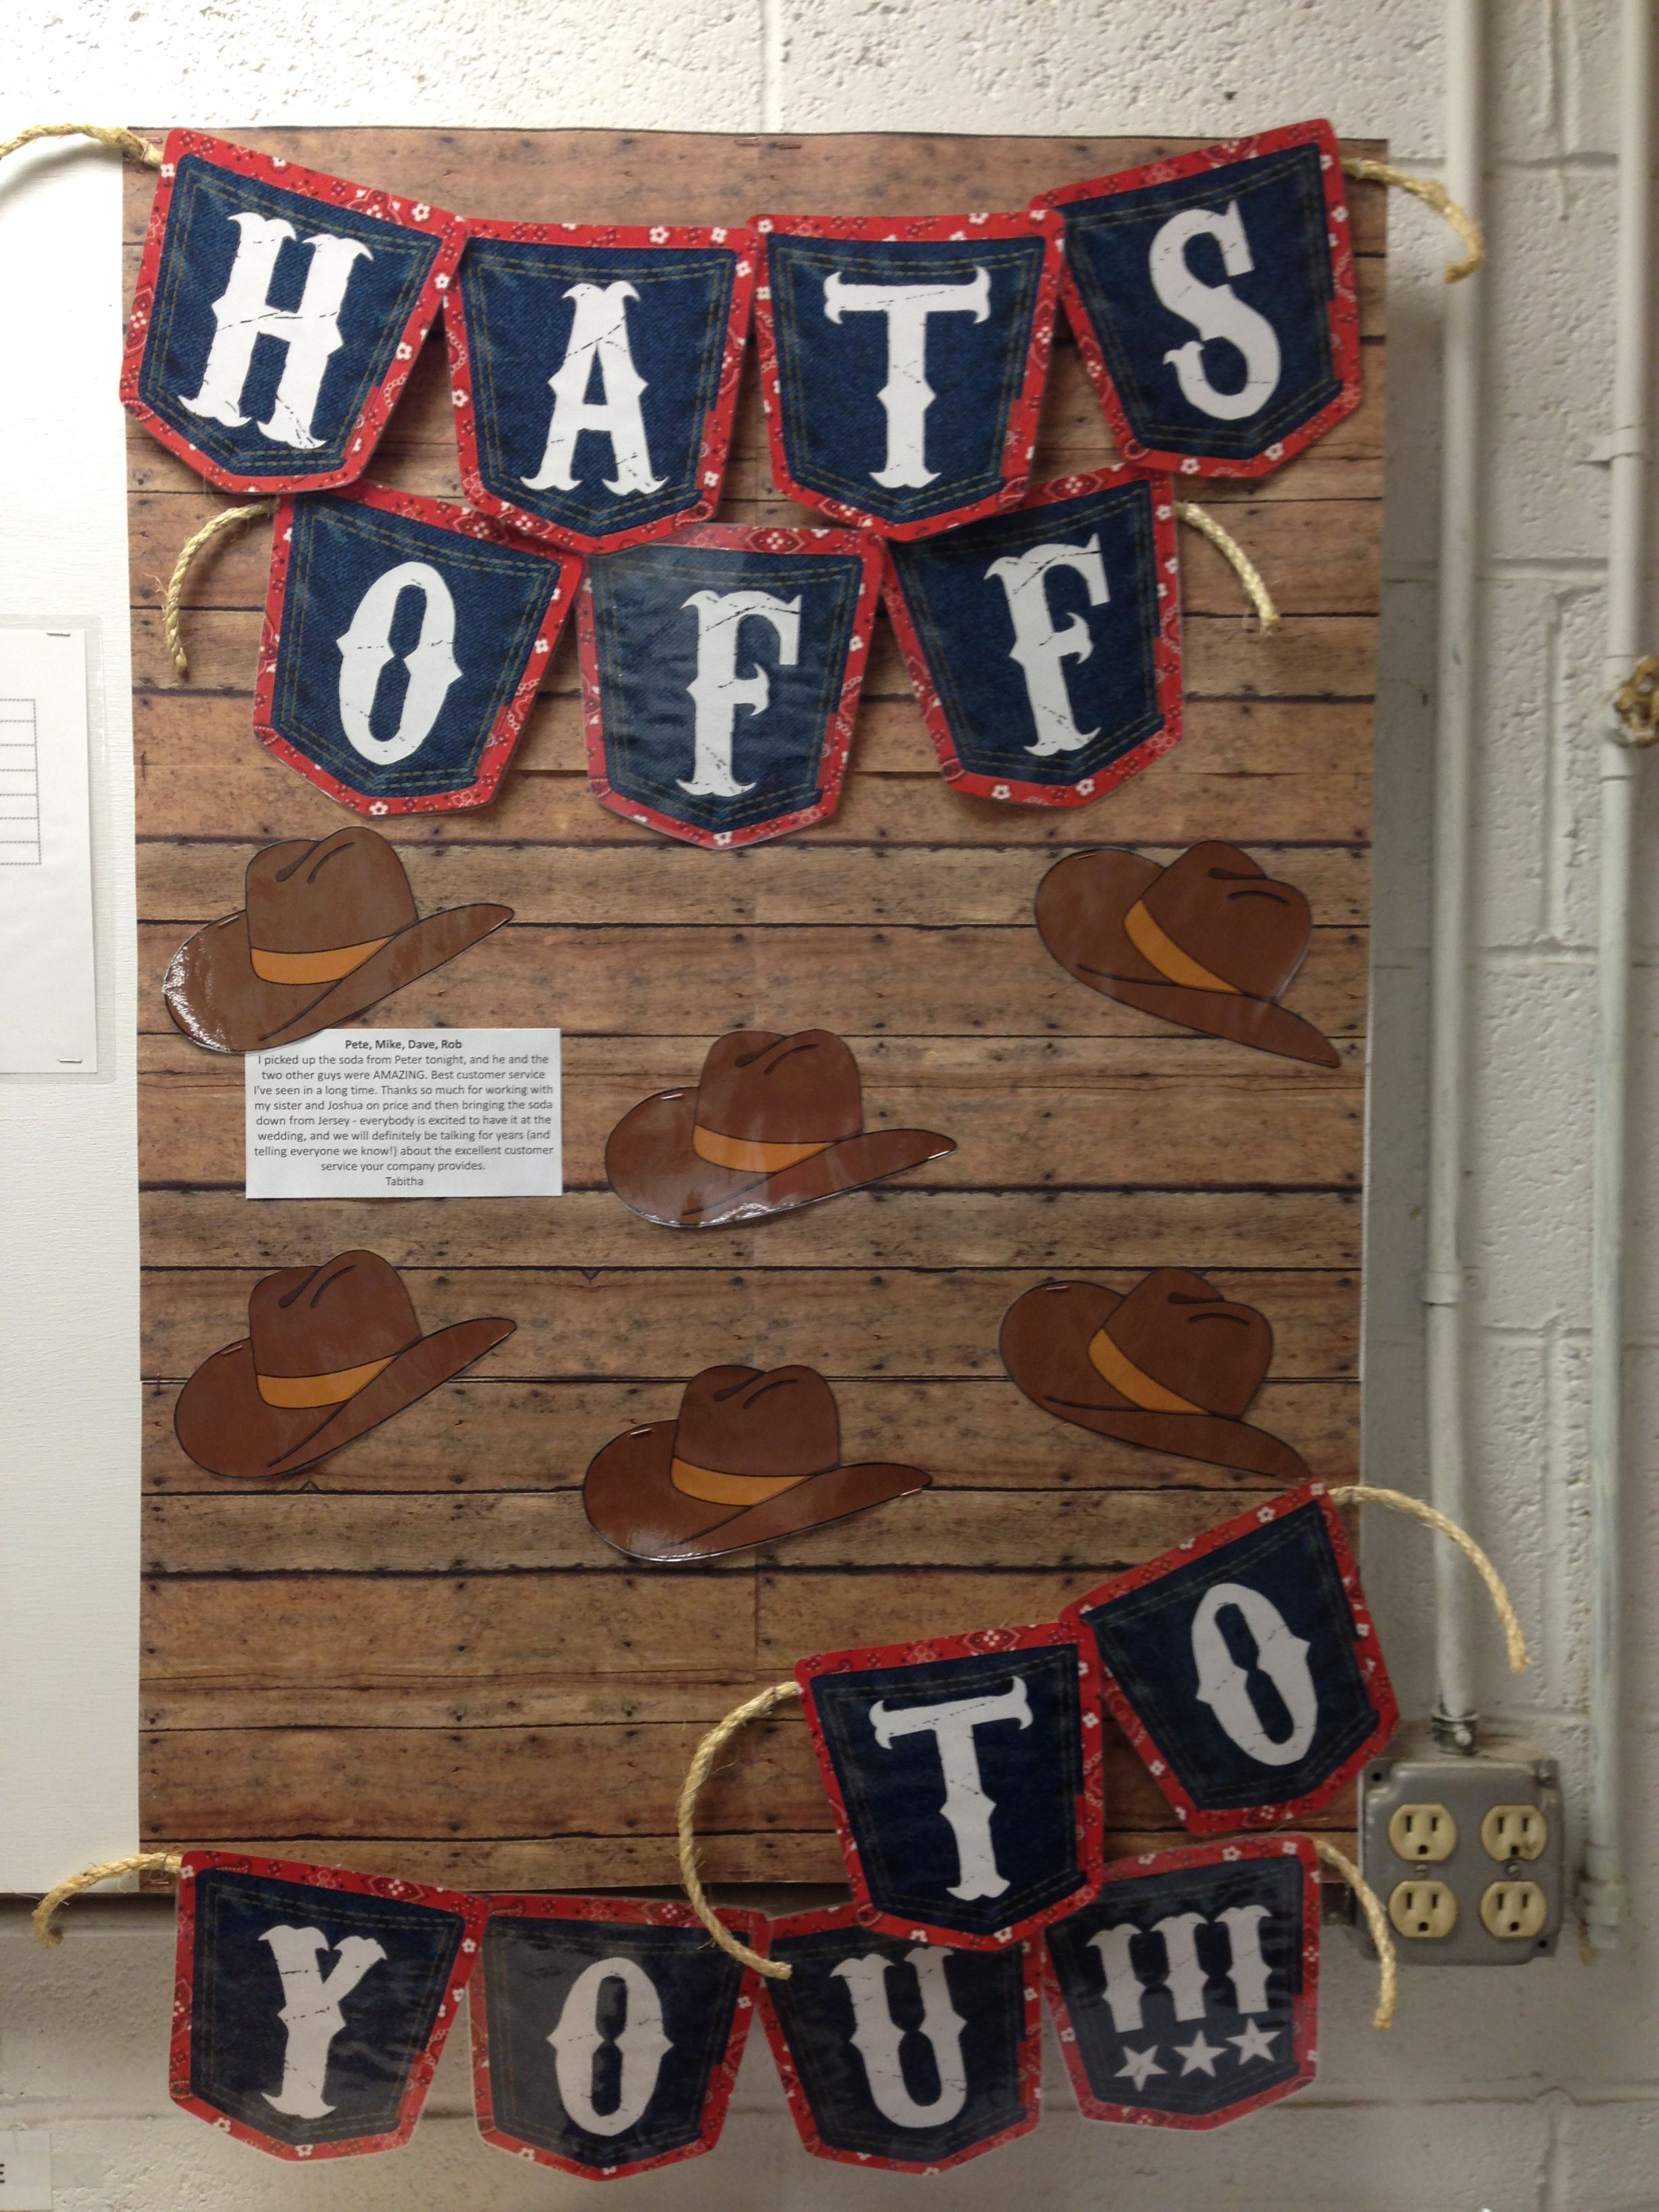 Western Cowboy Themed Recognition Board Hats Off To You Post Things Up When Someone Does